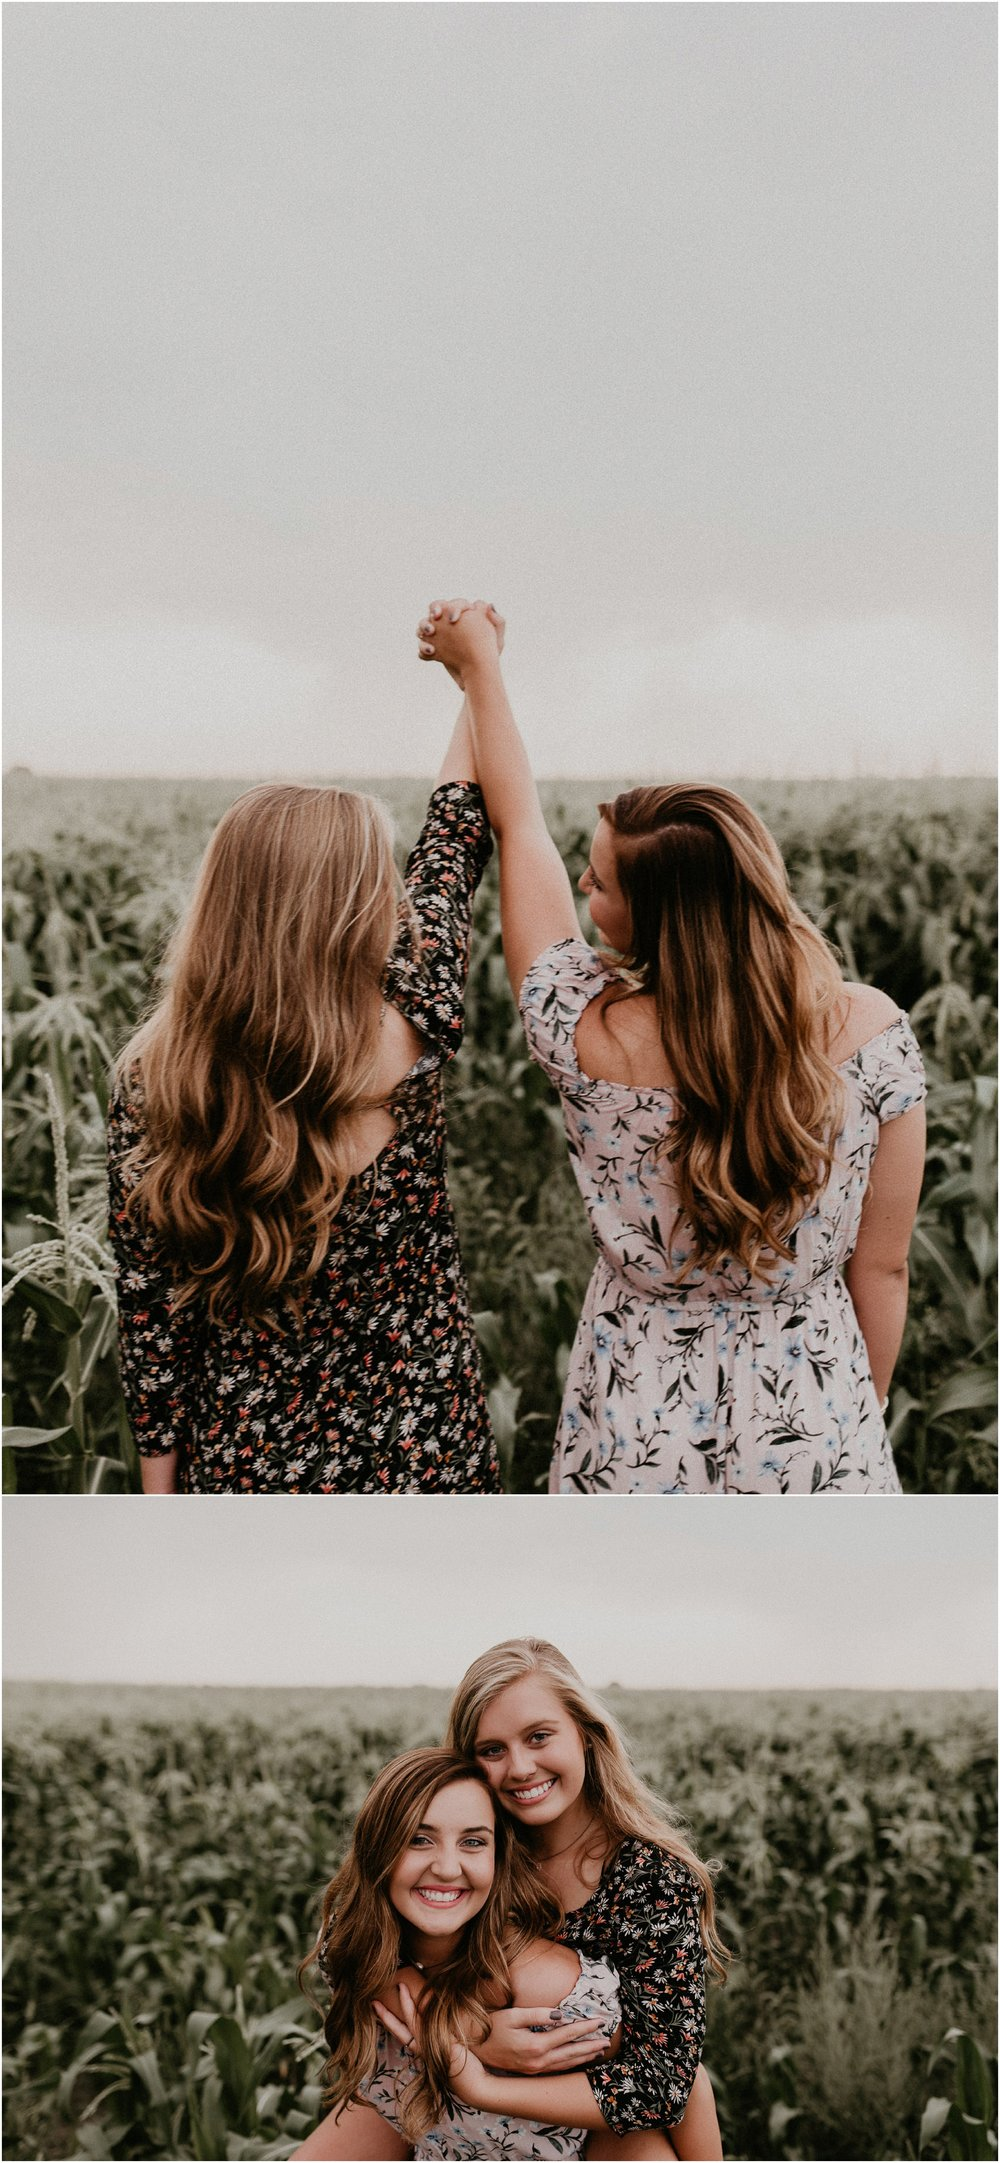 Boise Senior Photographer Idaho Summer Senior Pics Cornfield Linder Farms Floral Dress Flowers Sisters Love Family Pictures Makayla Madden Photography